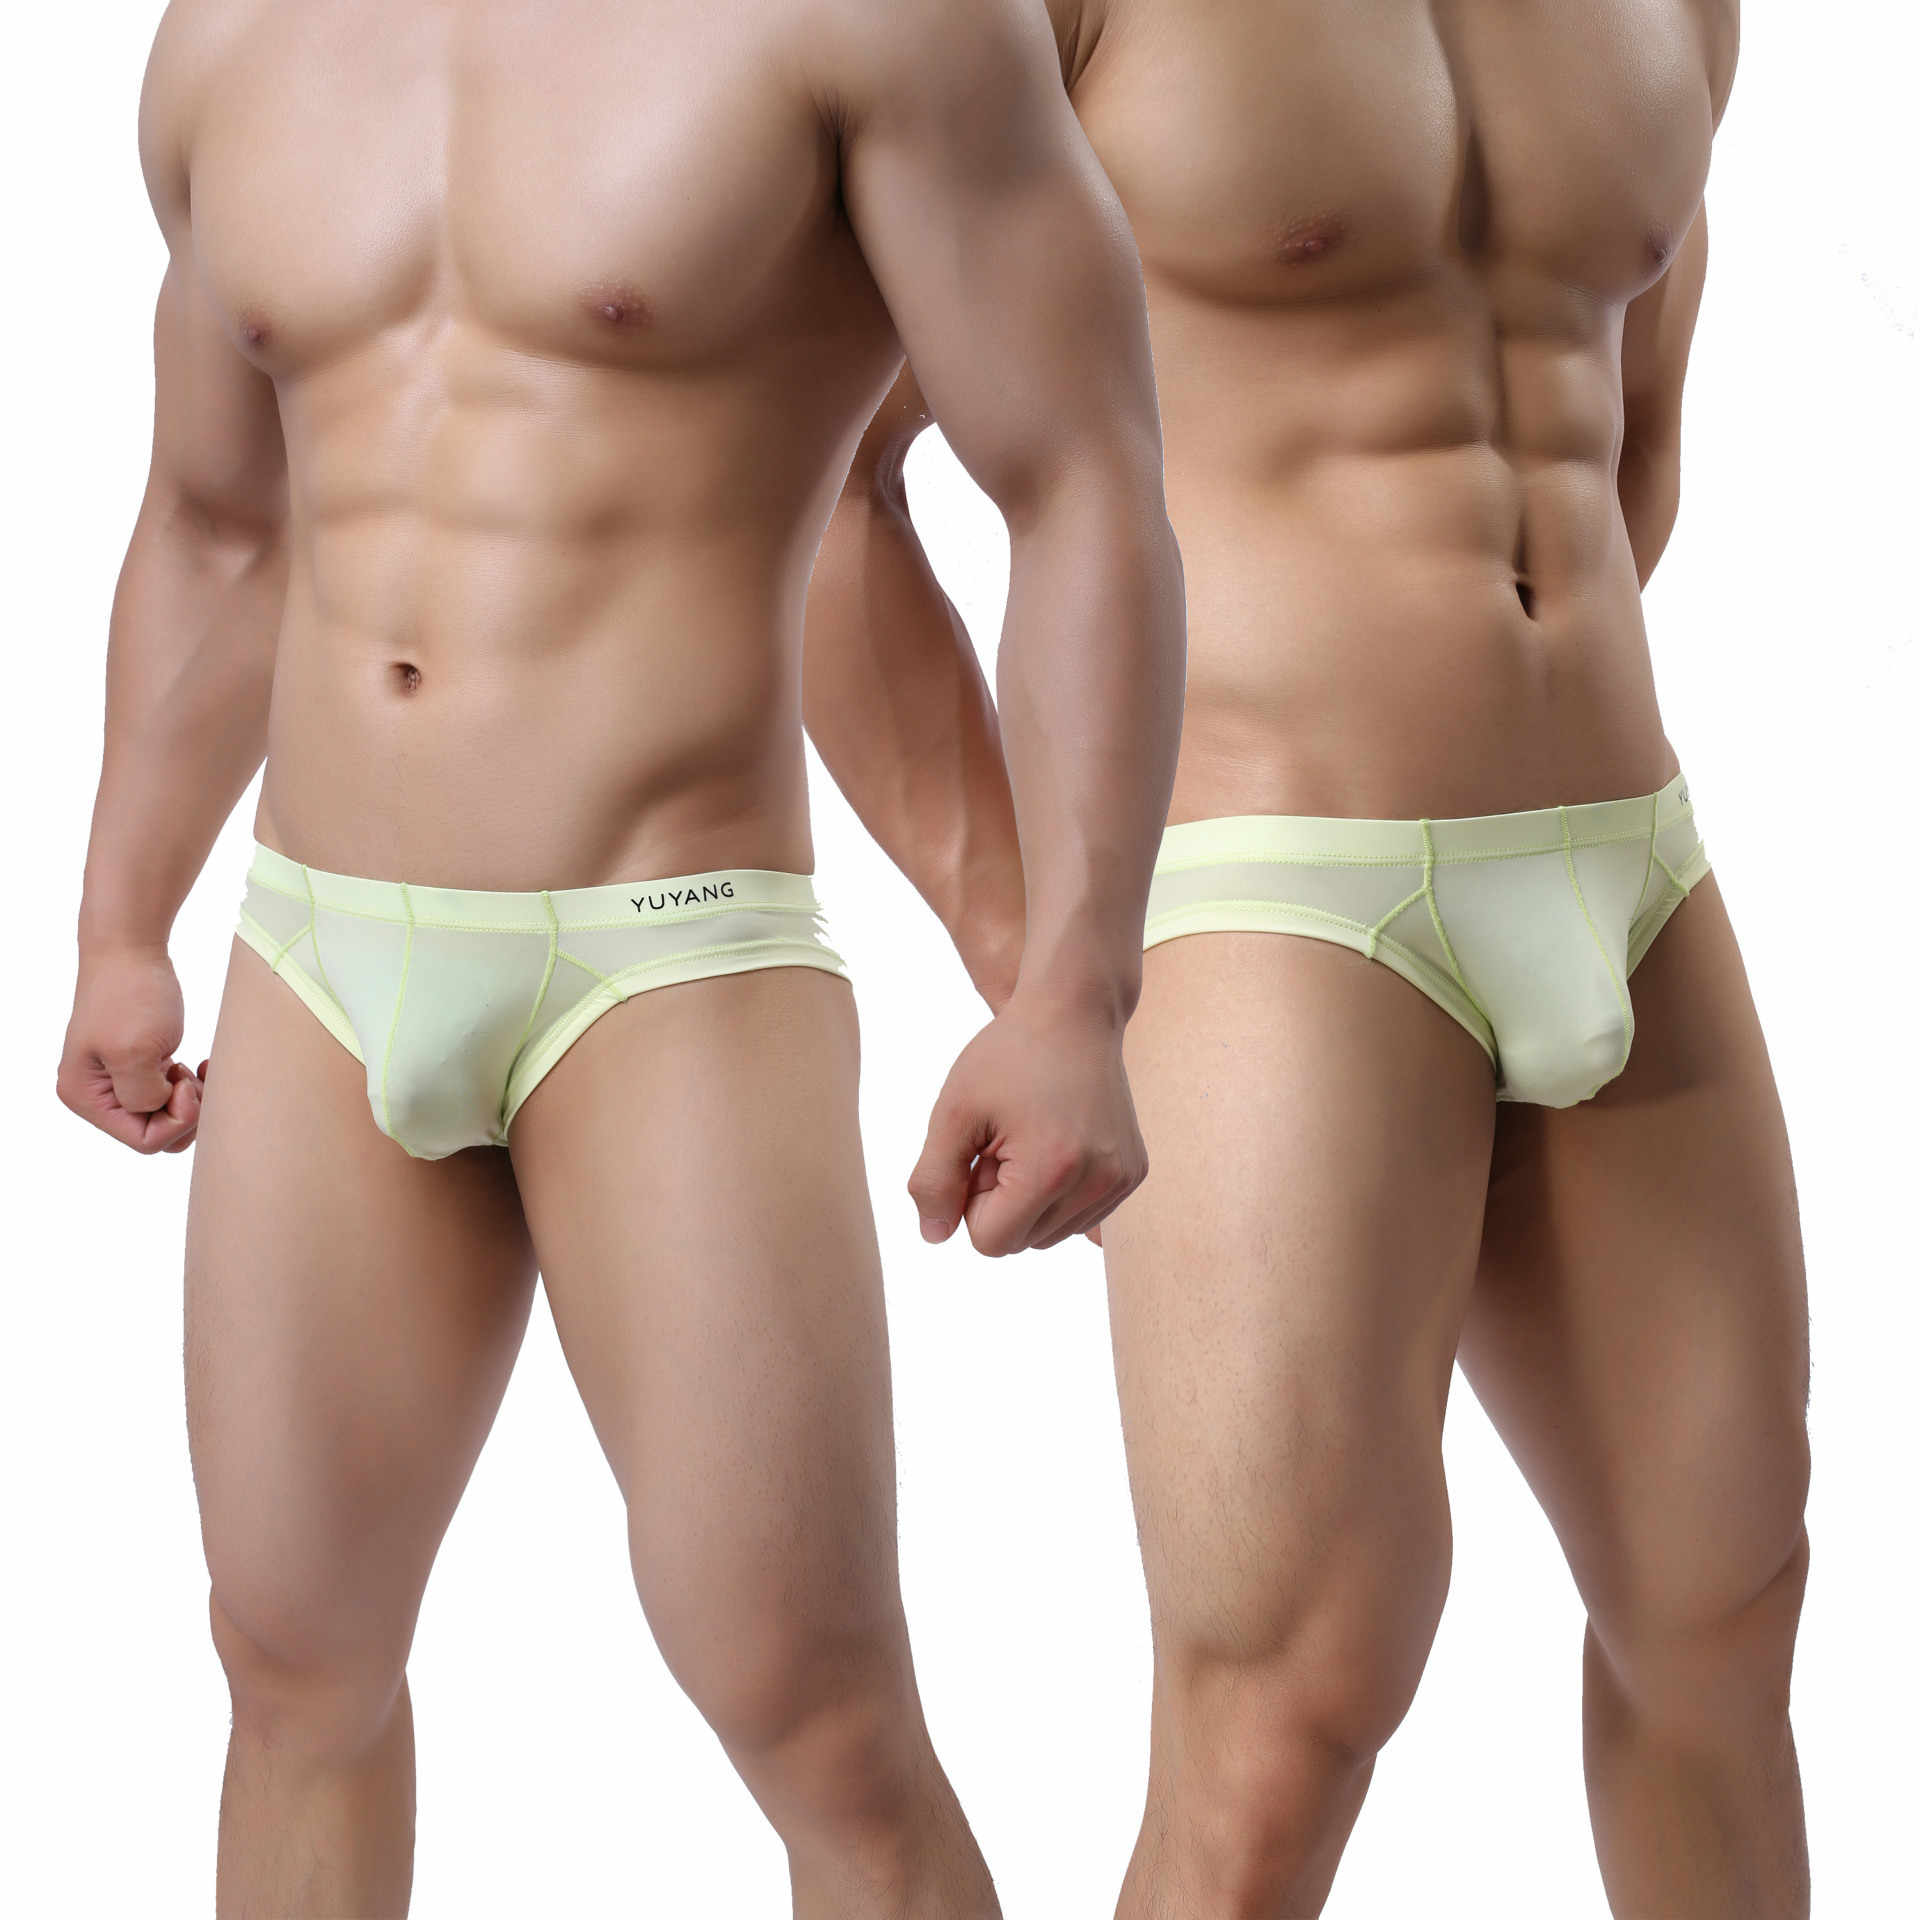 08656ee96 Sexy Underwear Fantastic Men Panties Panty For Sex Hot Sexy Porn Lingerie G  String Open Crotch